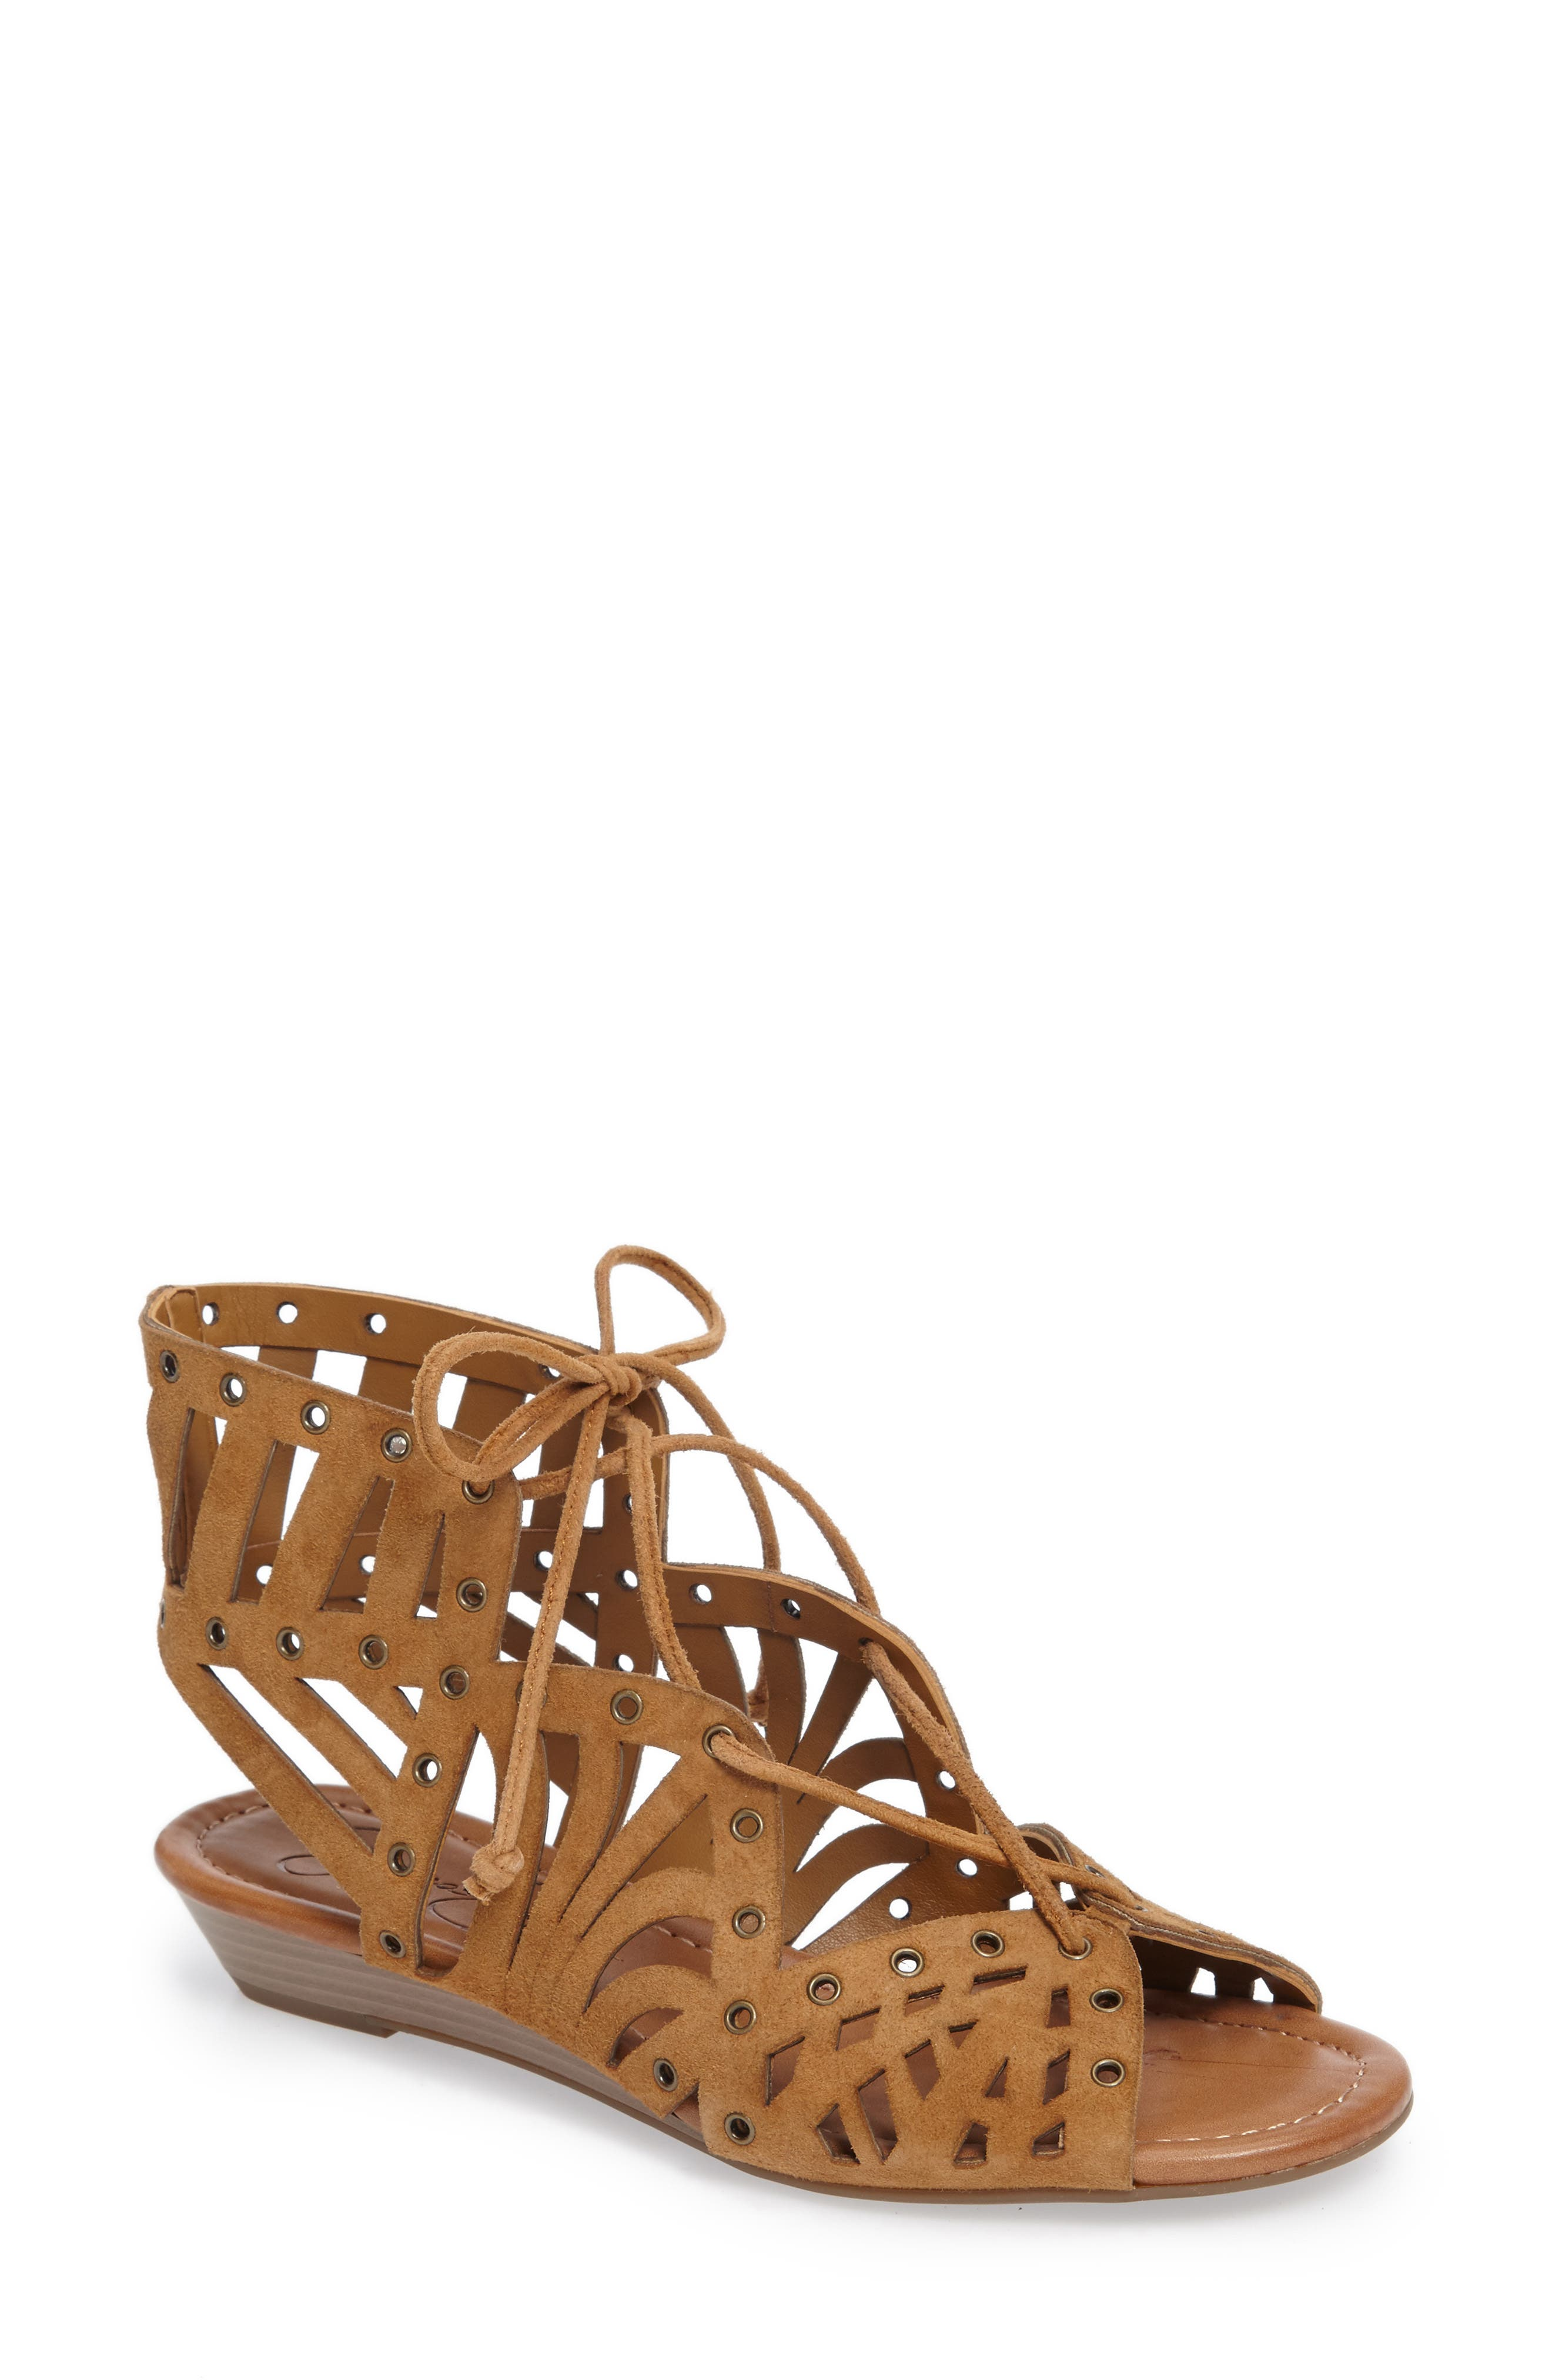 Alternate Image 1 Selected - Jessica Simpson Lalaine Ghillie Lace Sandal (Women)